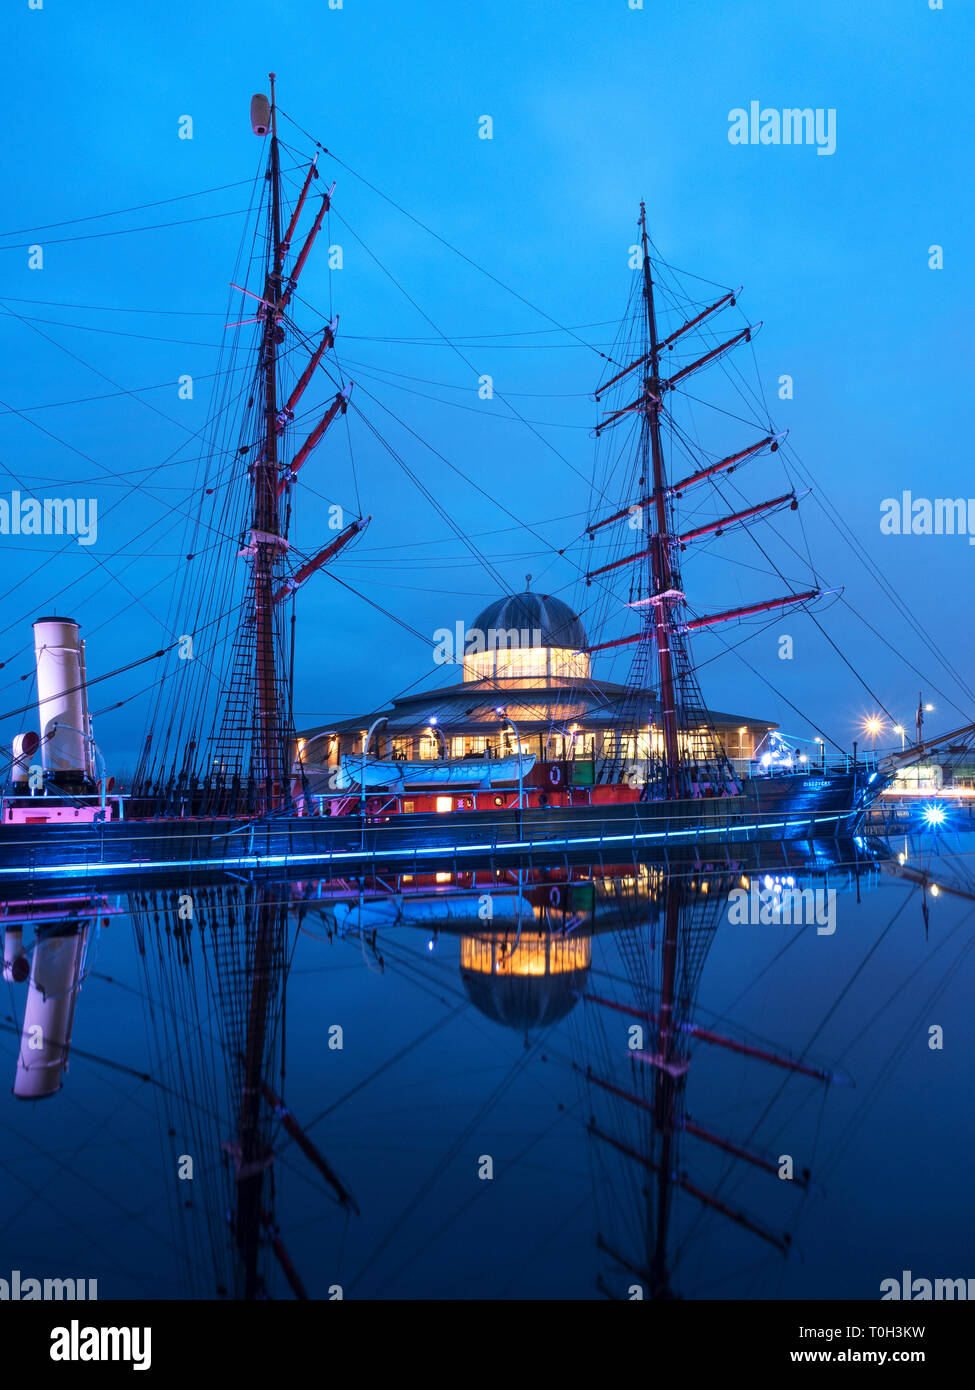 RRS Discovery at Discovery Point at Dusk Dundee Scotland - Stock Image